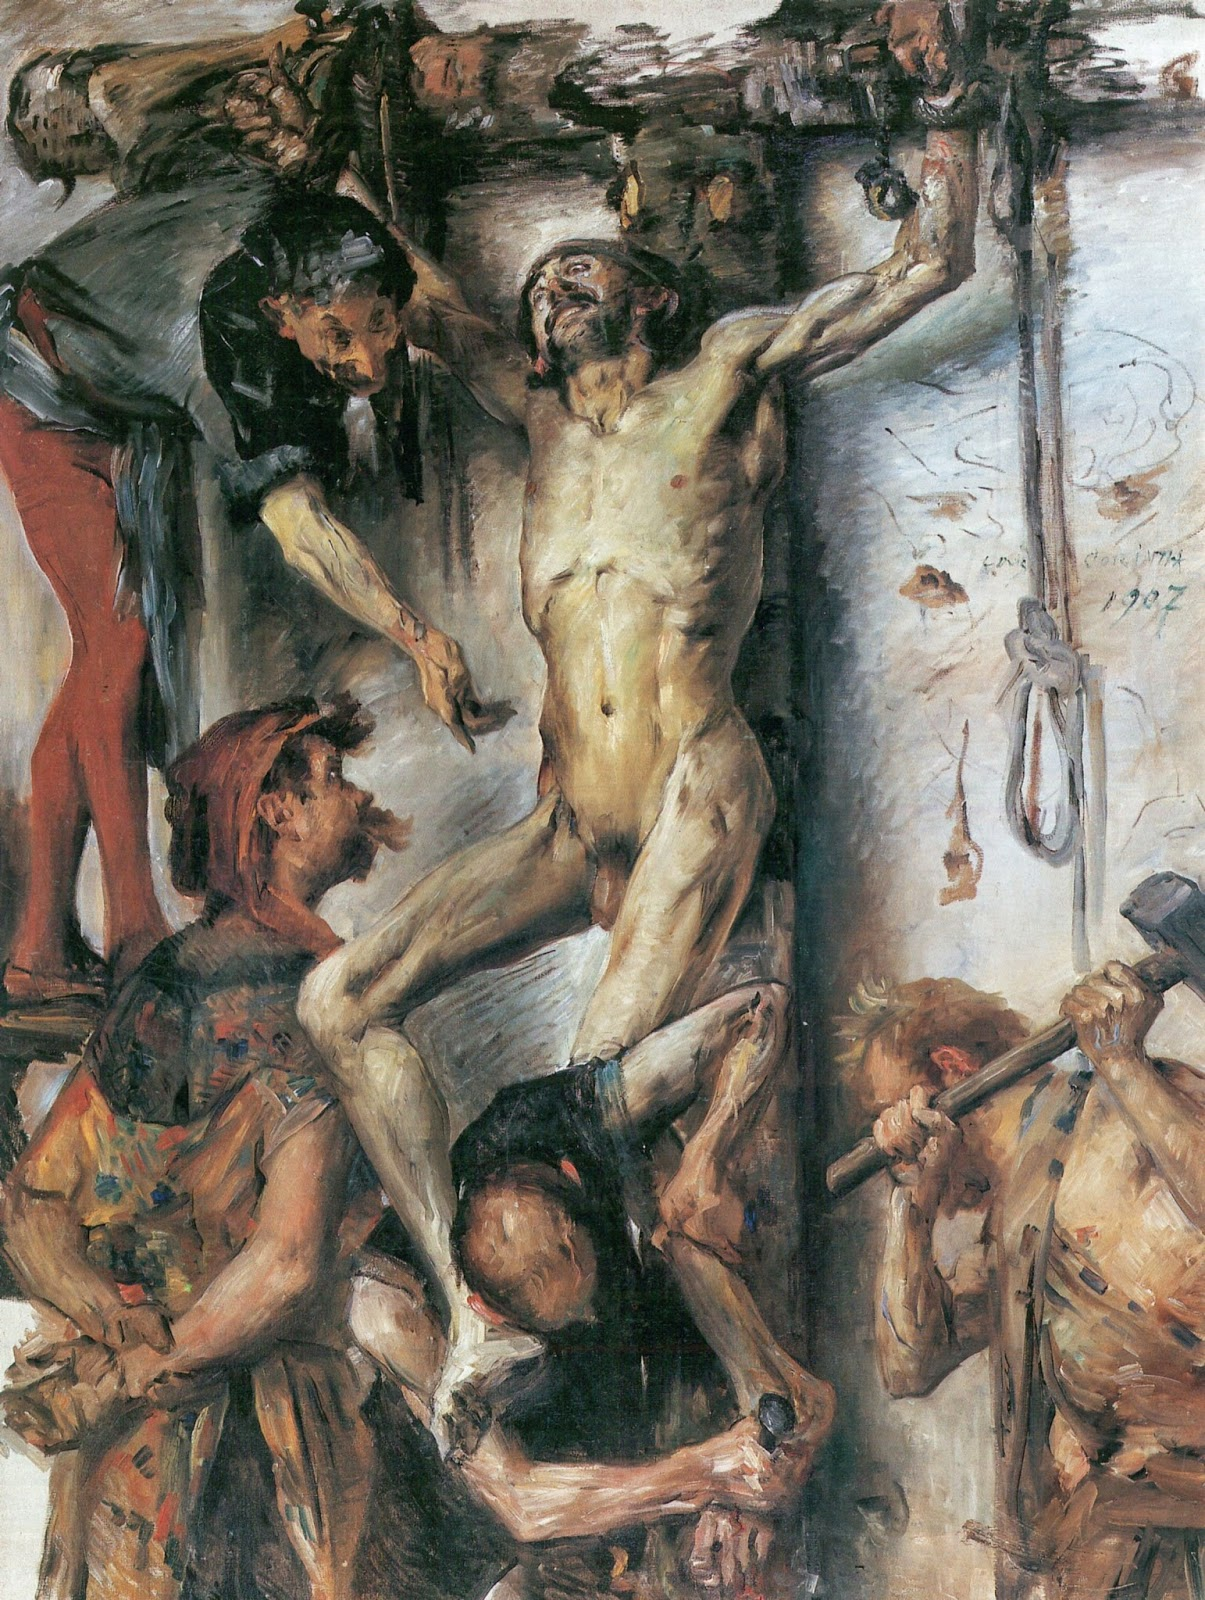 'The Great Martyrdom' by Lovis Corinth, 1907